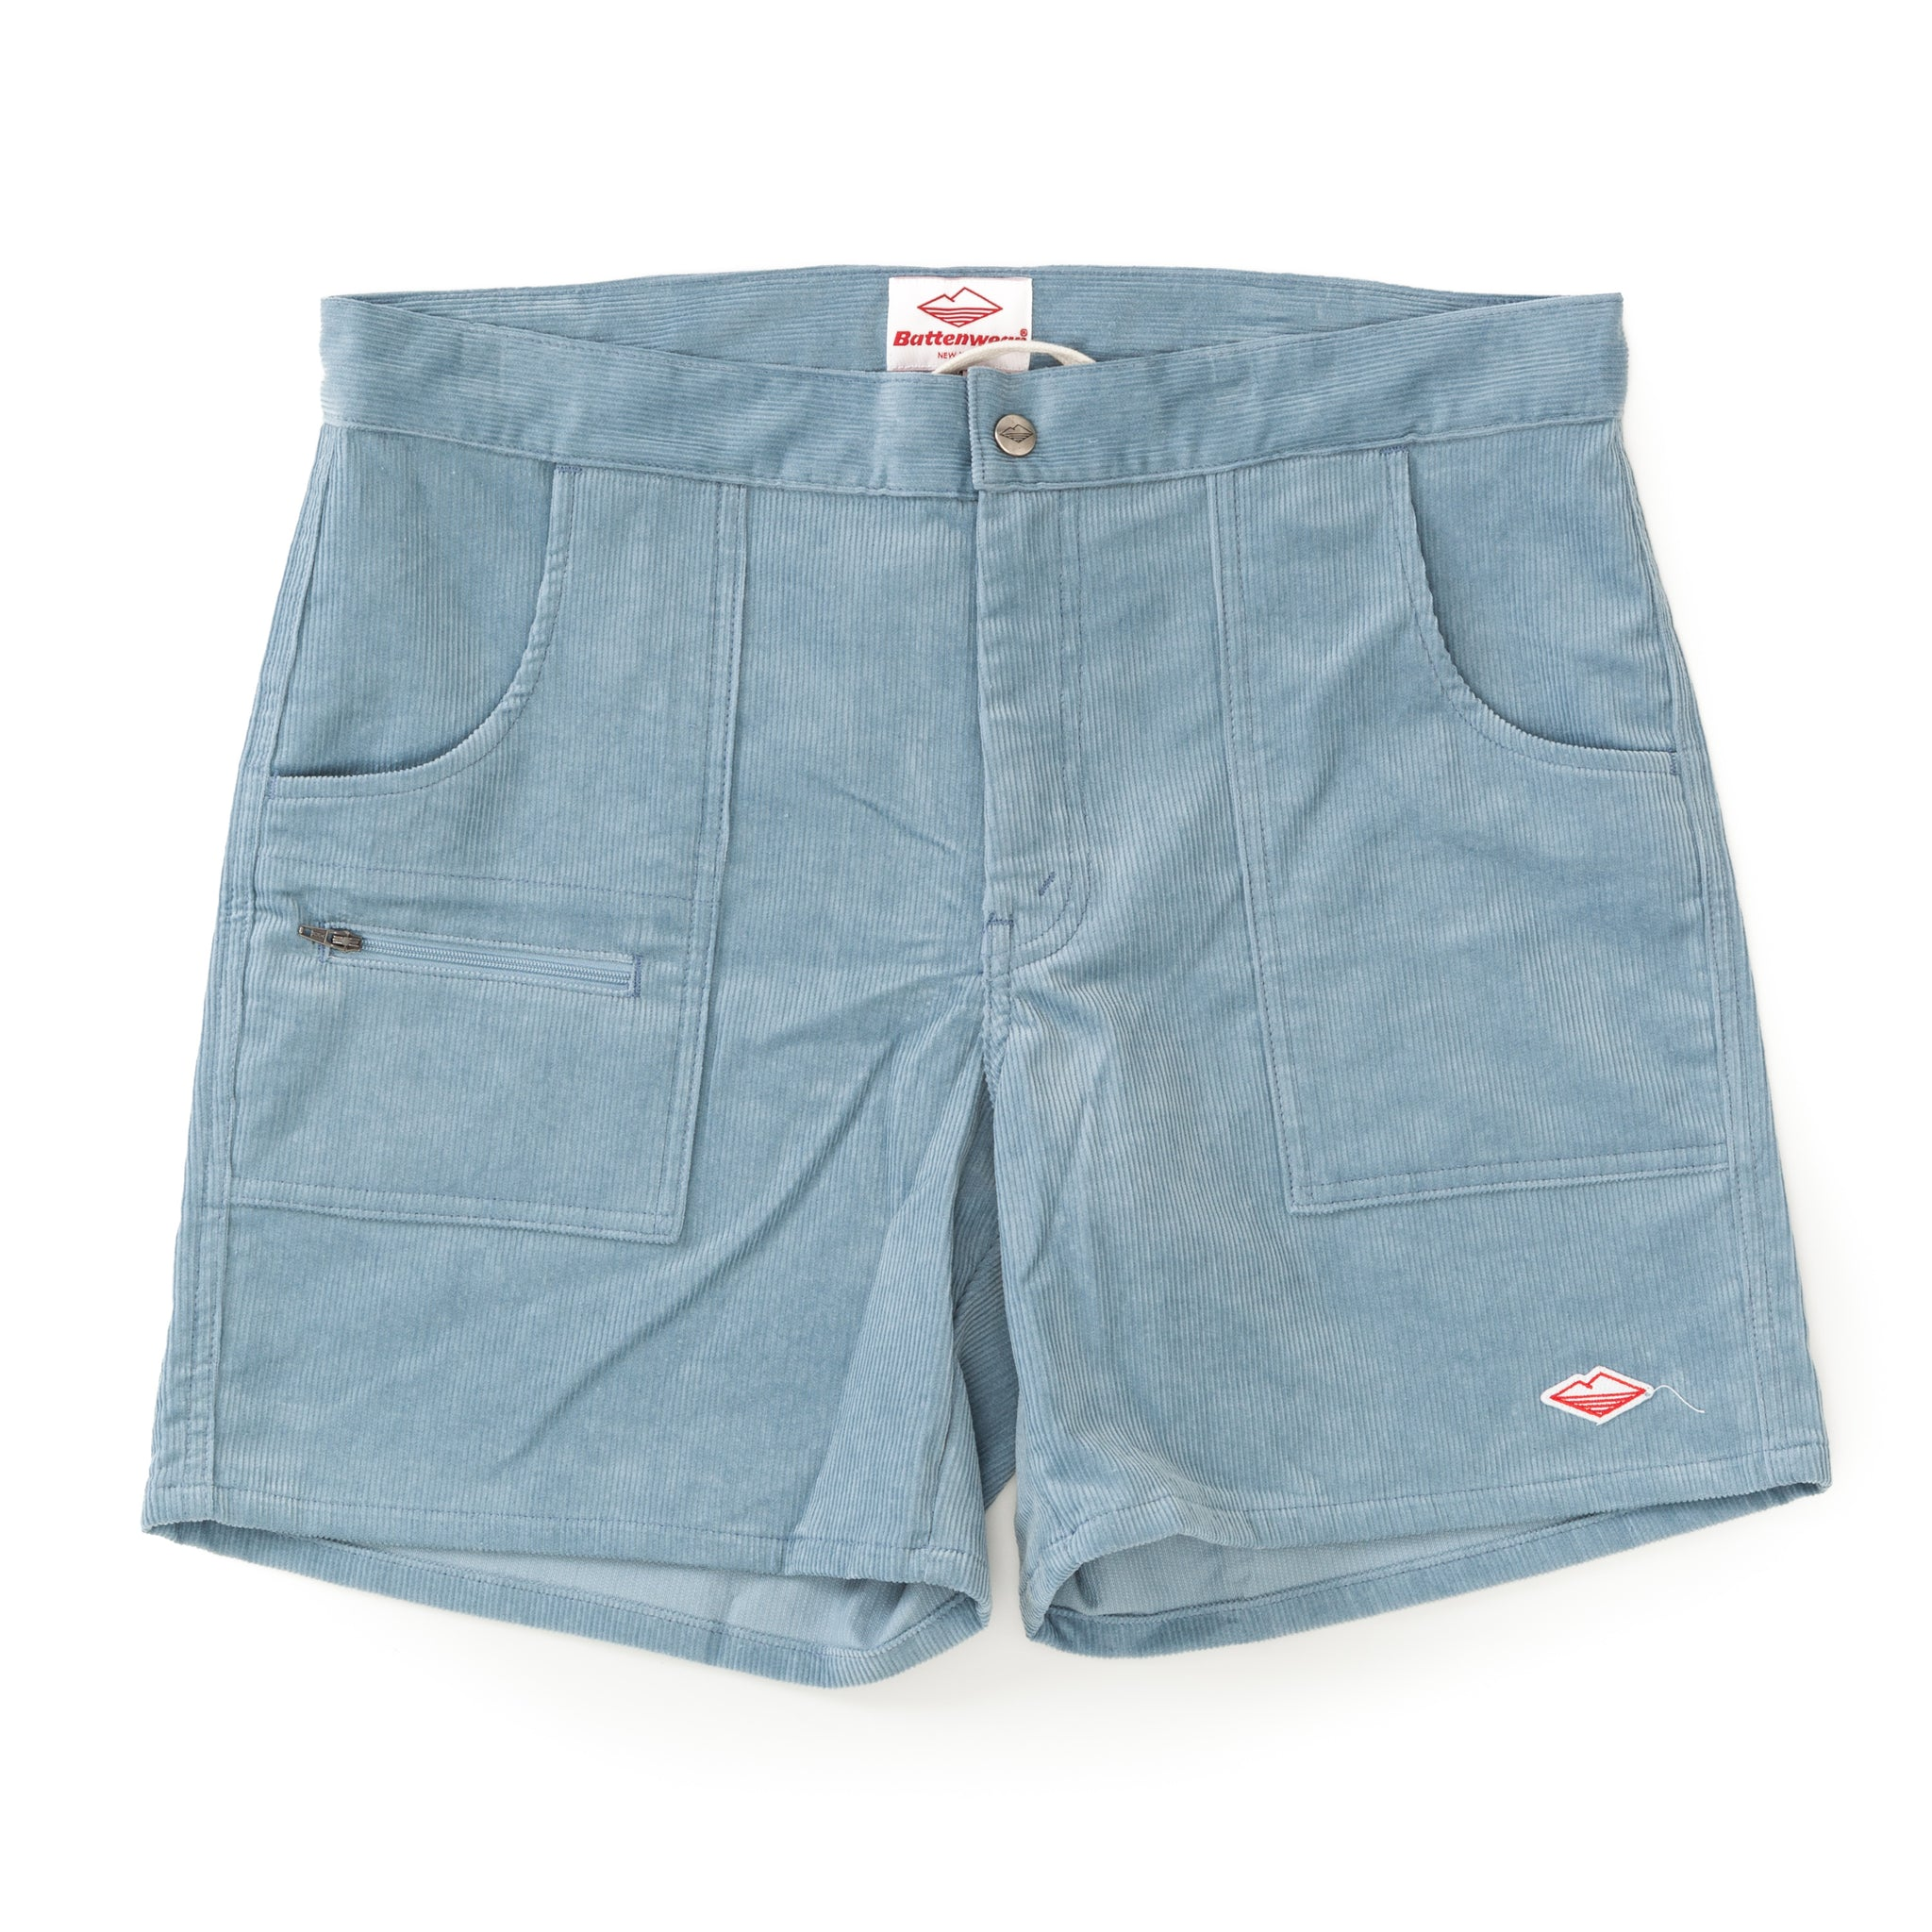 Battenwear Local Short Light Blue